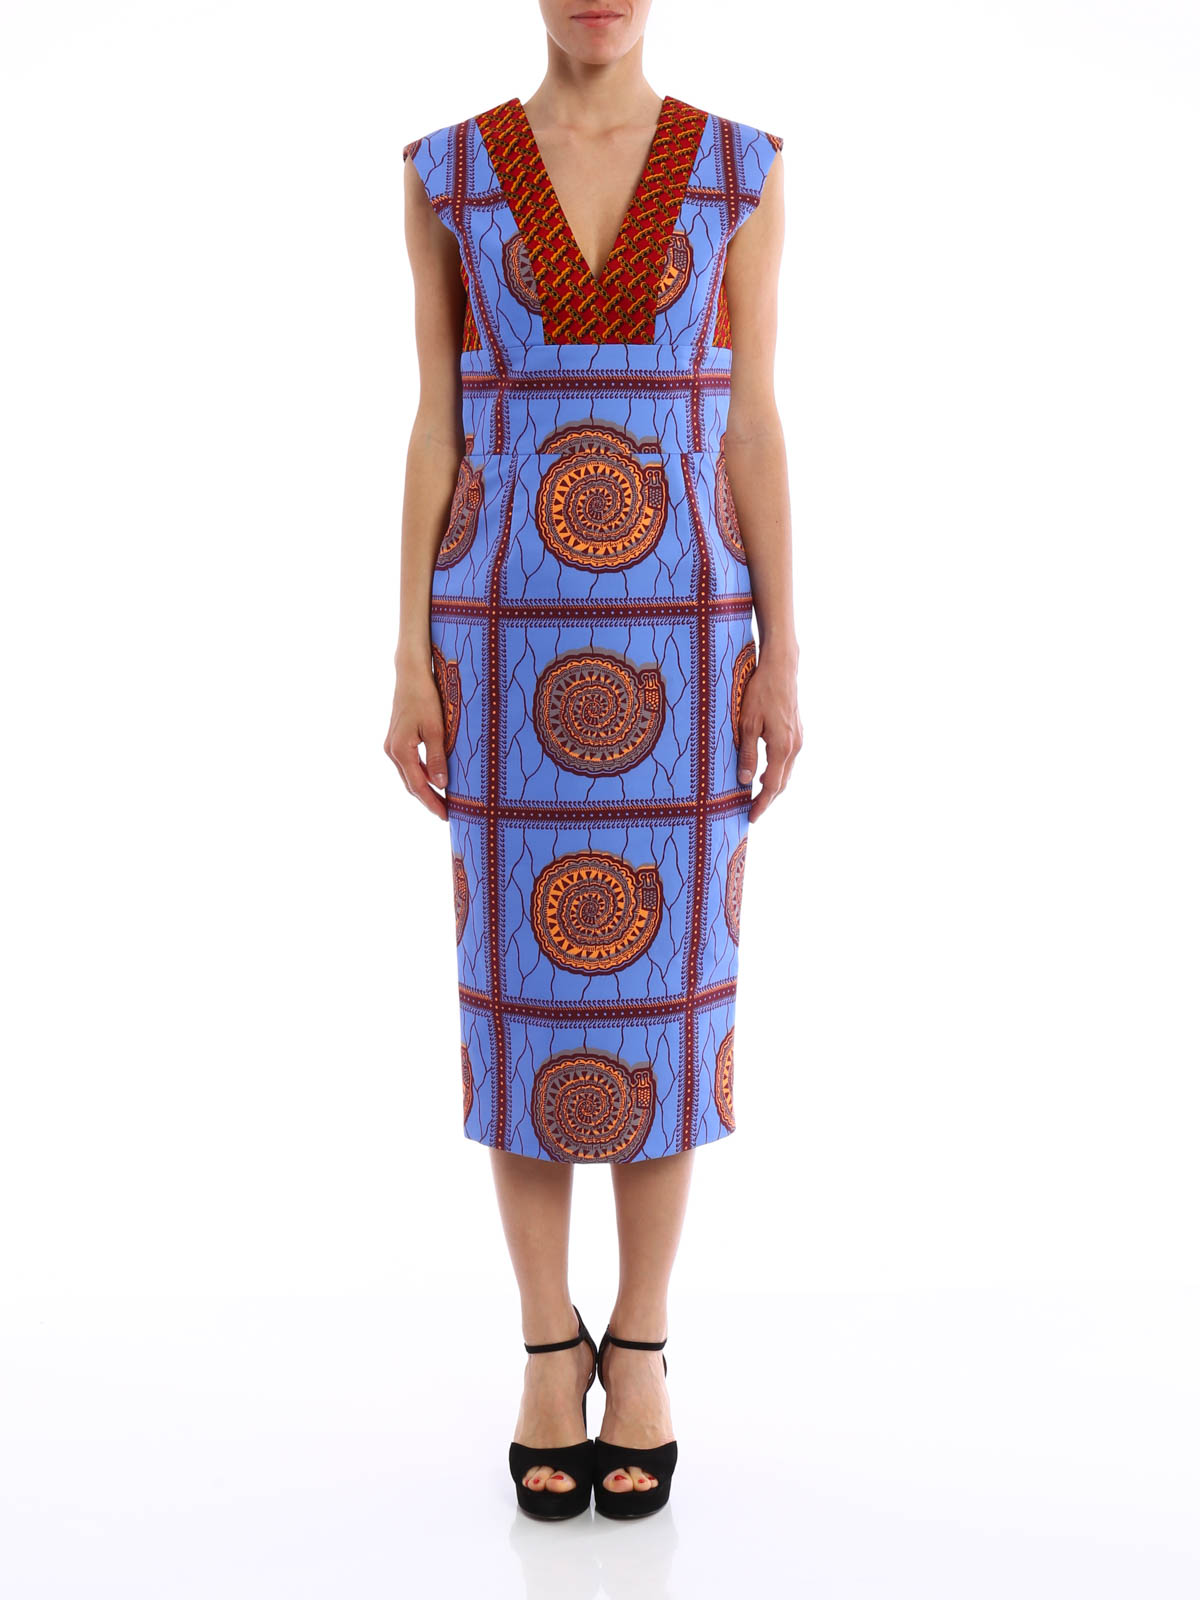 Pianista dress by Stella Jean - cocktail dresses | Shop online at ...